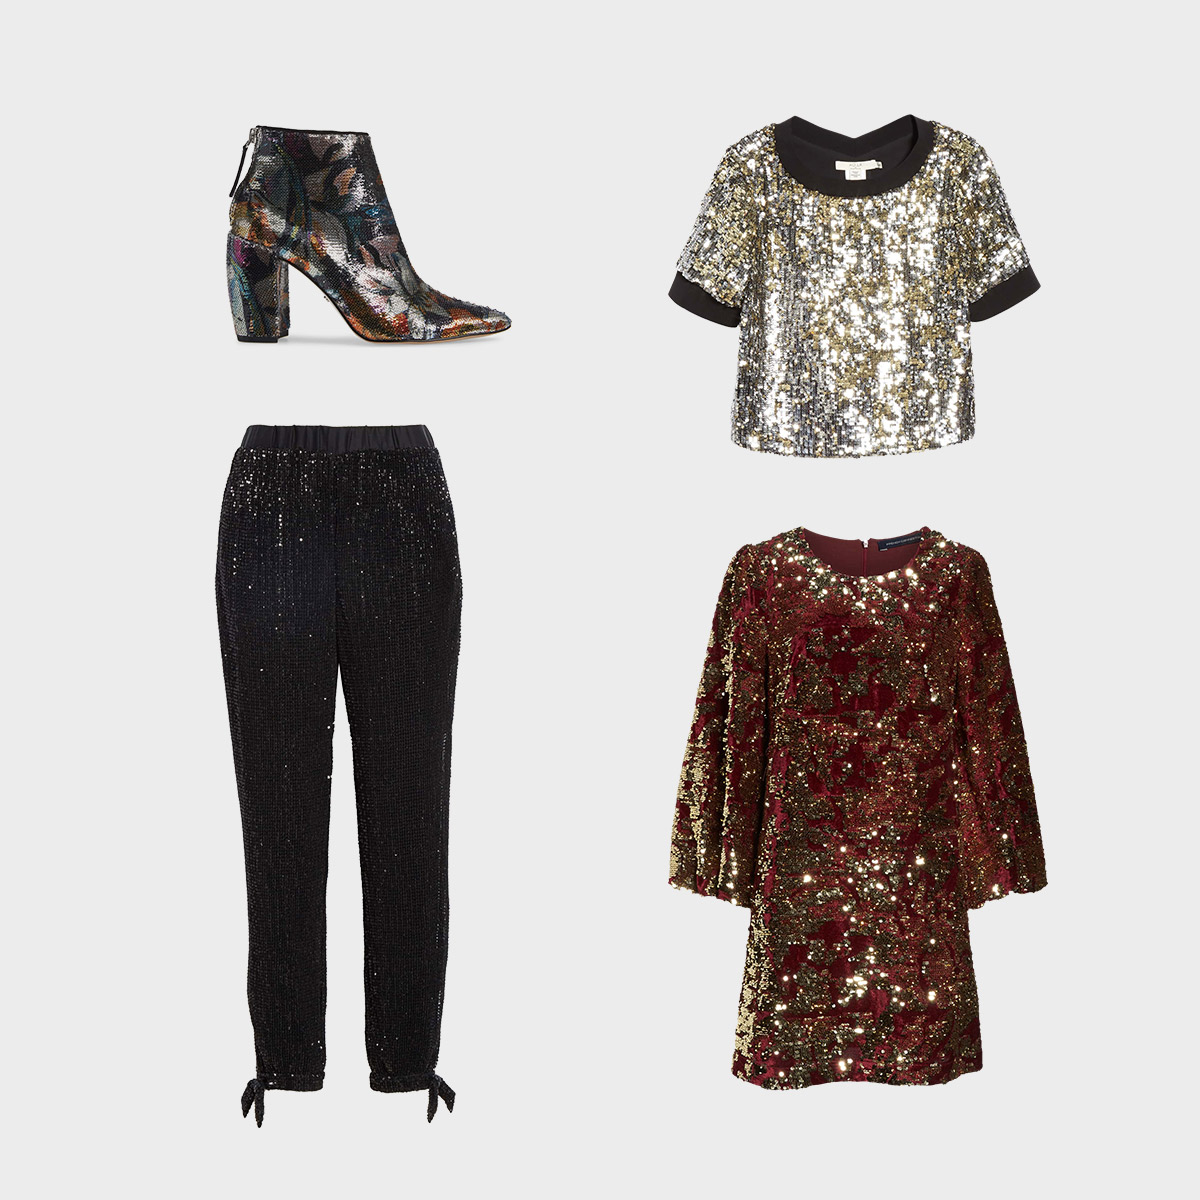 Three women's fashion items featuring sequins.